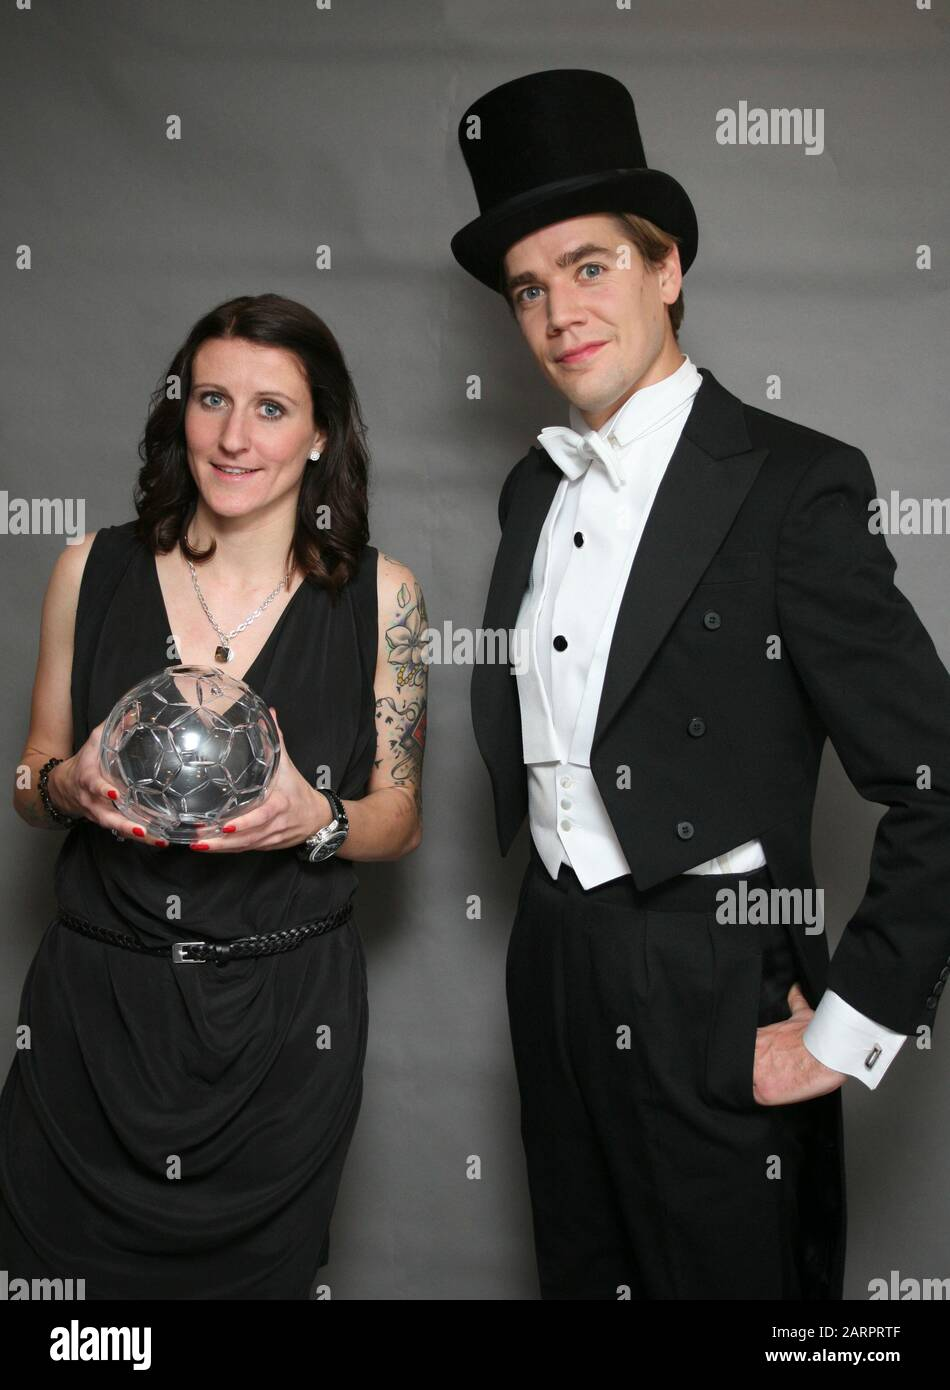 PELLE ALMQVIST singer in Swedish group The Hives  award German player in Swedish football league Anja Mittag as striker of the year Stock Photo